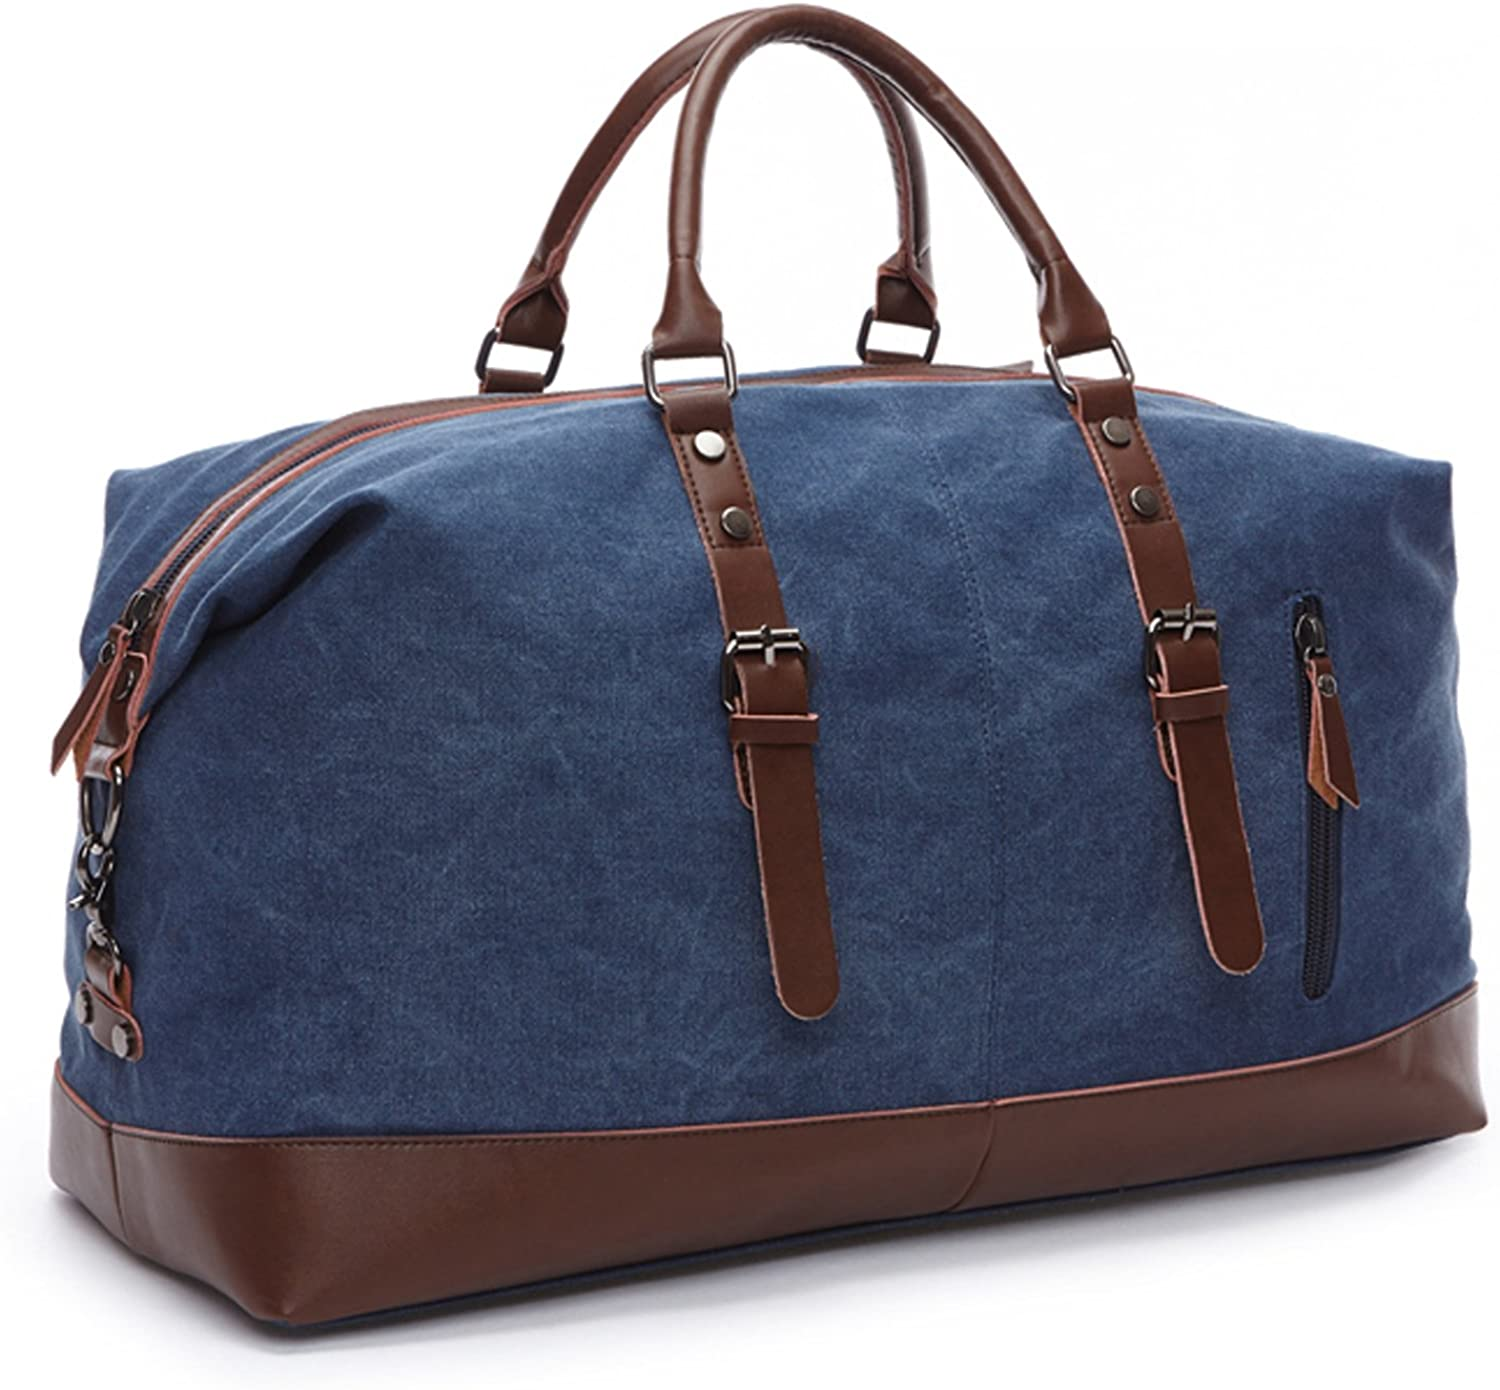 Seamand Canvas Travel Duffel Bag Weekender Extra Large Tote Satchel Handbag